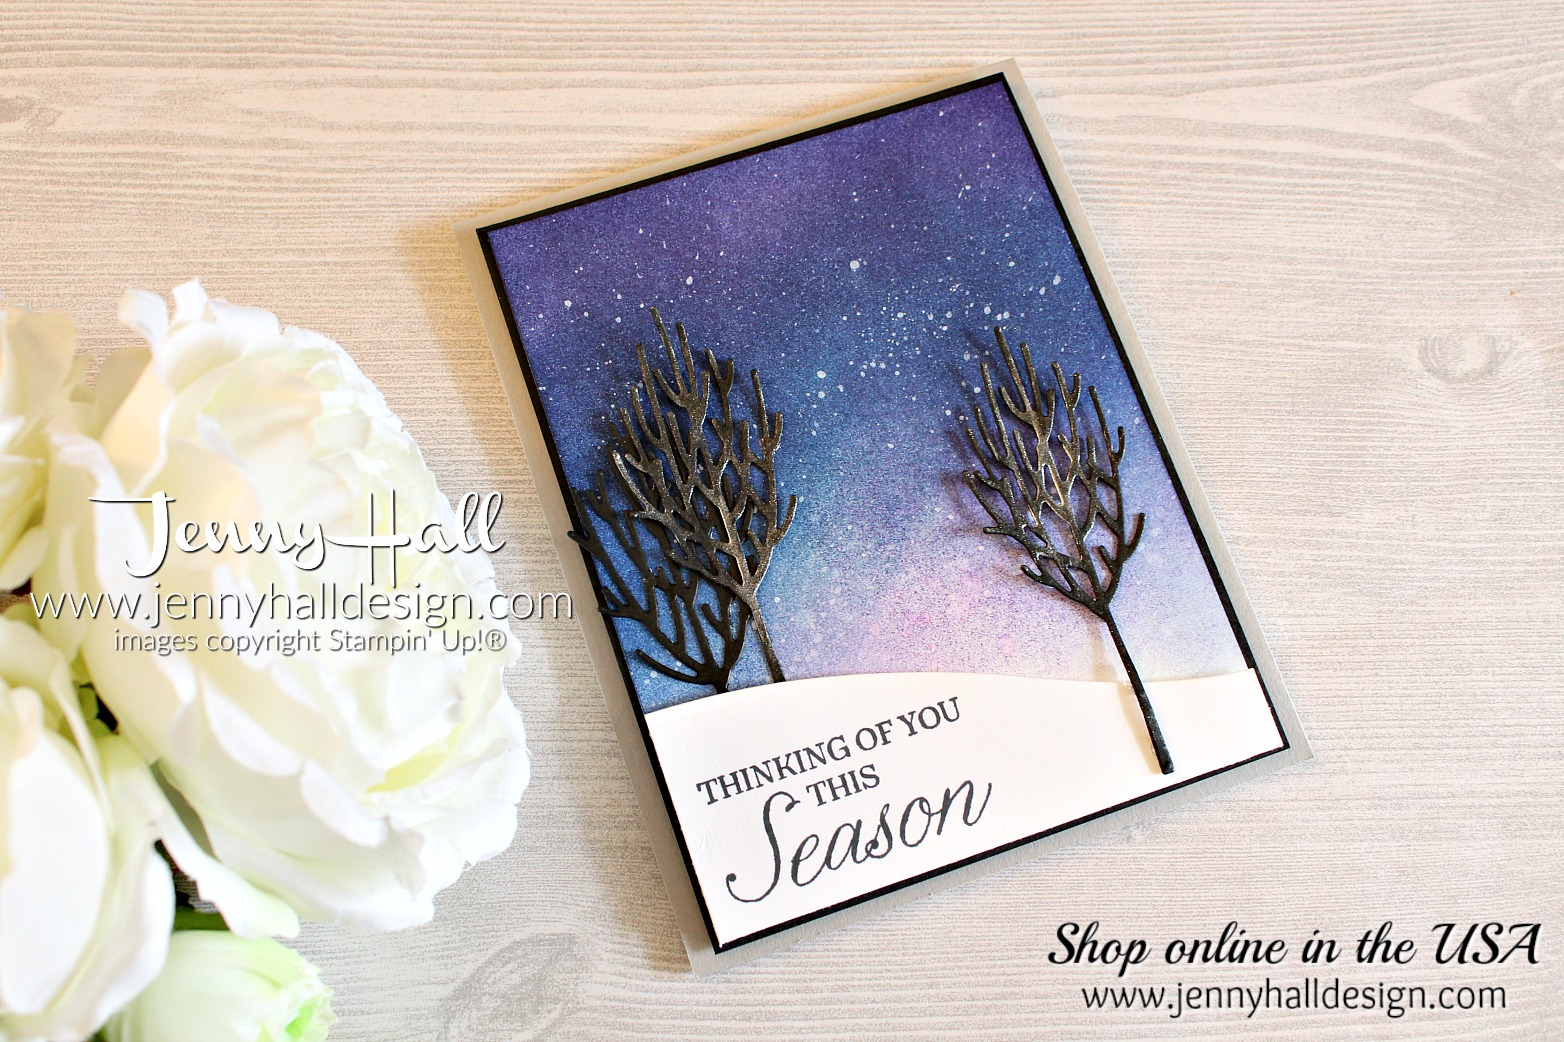 Guest Designer for Crazy Crafters Blog Hop created by www.jennyhalldesign.com for #cardmaking #handmadecard #inkblending #spongebrayer #winterskytechnique #twilight #winterwoods #inthewoodsthinlits #crazycraftersbloghop #guestdesigner #painting #watercoloring #youtuber #videotutorial #jennyhall #jennyhalldesign #jennystampsup @artsandcrafts #diy #stampinup #stamping #rubberstamp #freeartclass #learnart